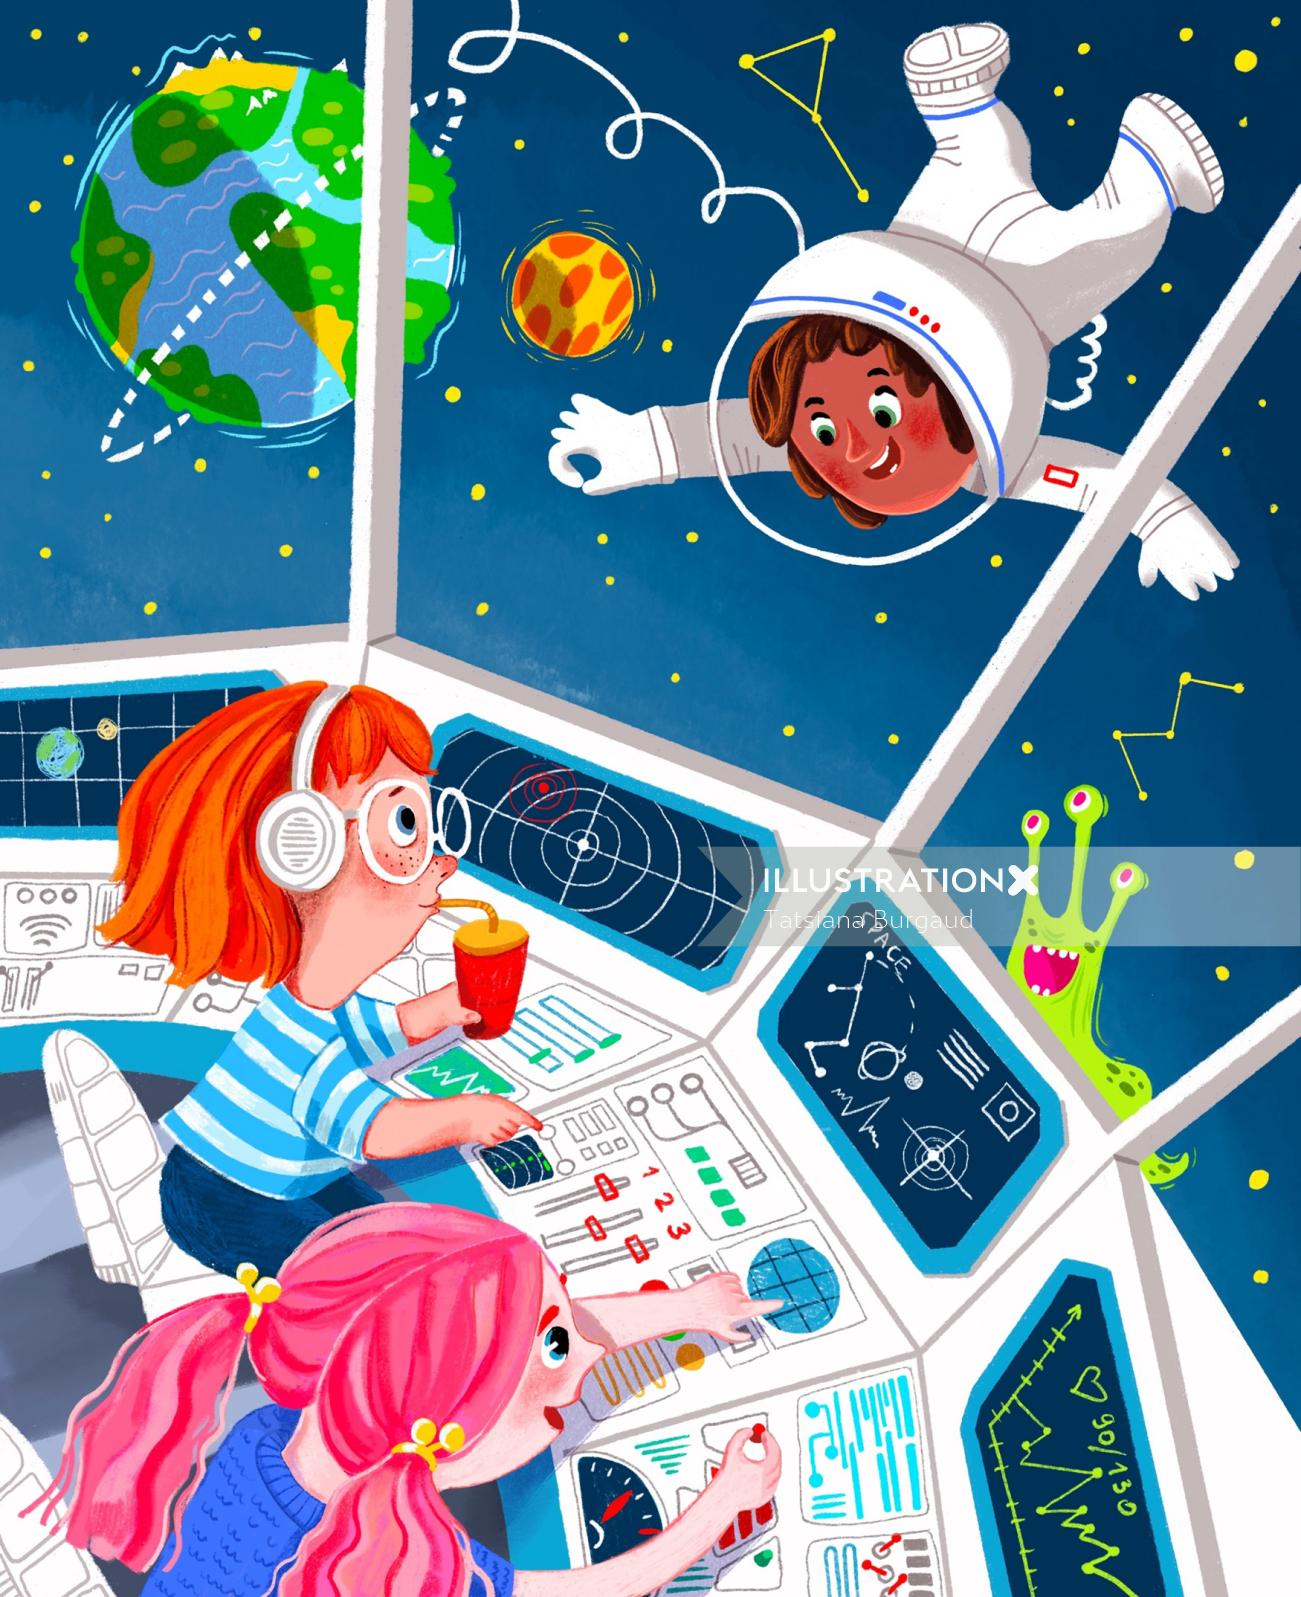 astronaute, space ship, shuttle, planet, earth, extraterrestrial